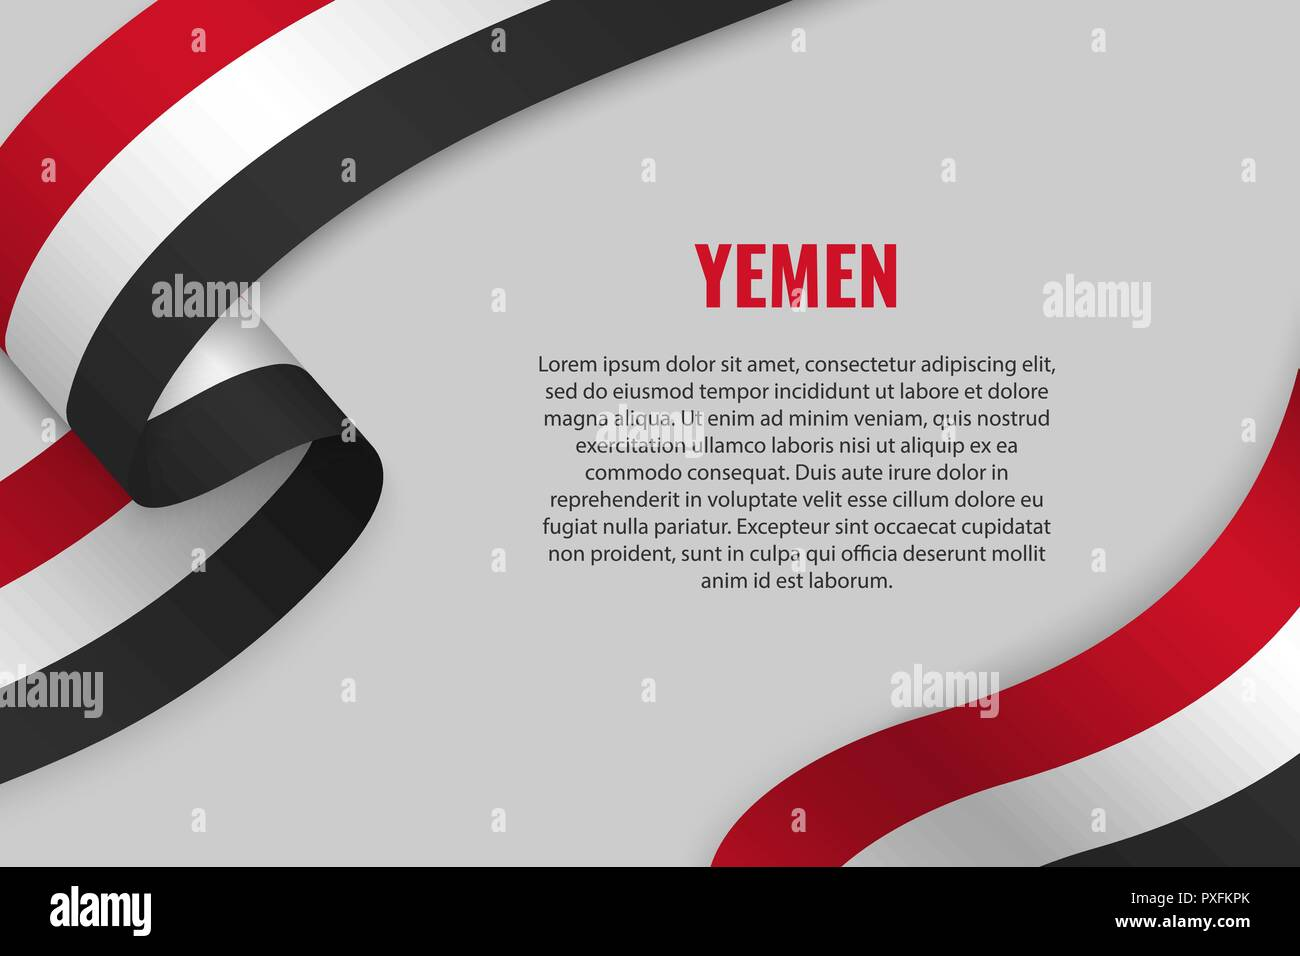 Waving ribbon or banner with flag of Yemen. Template for poster design - Stock Vector